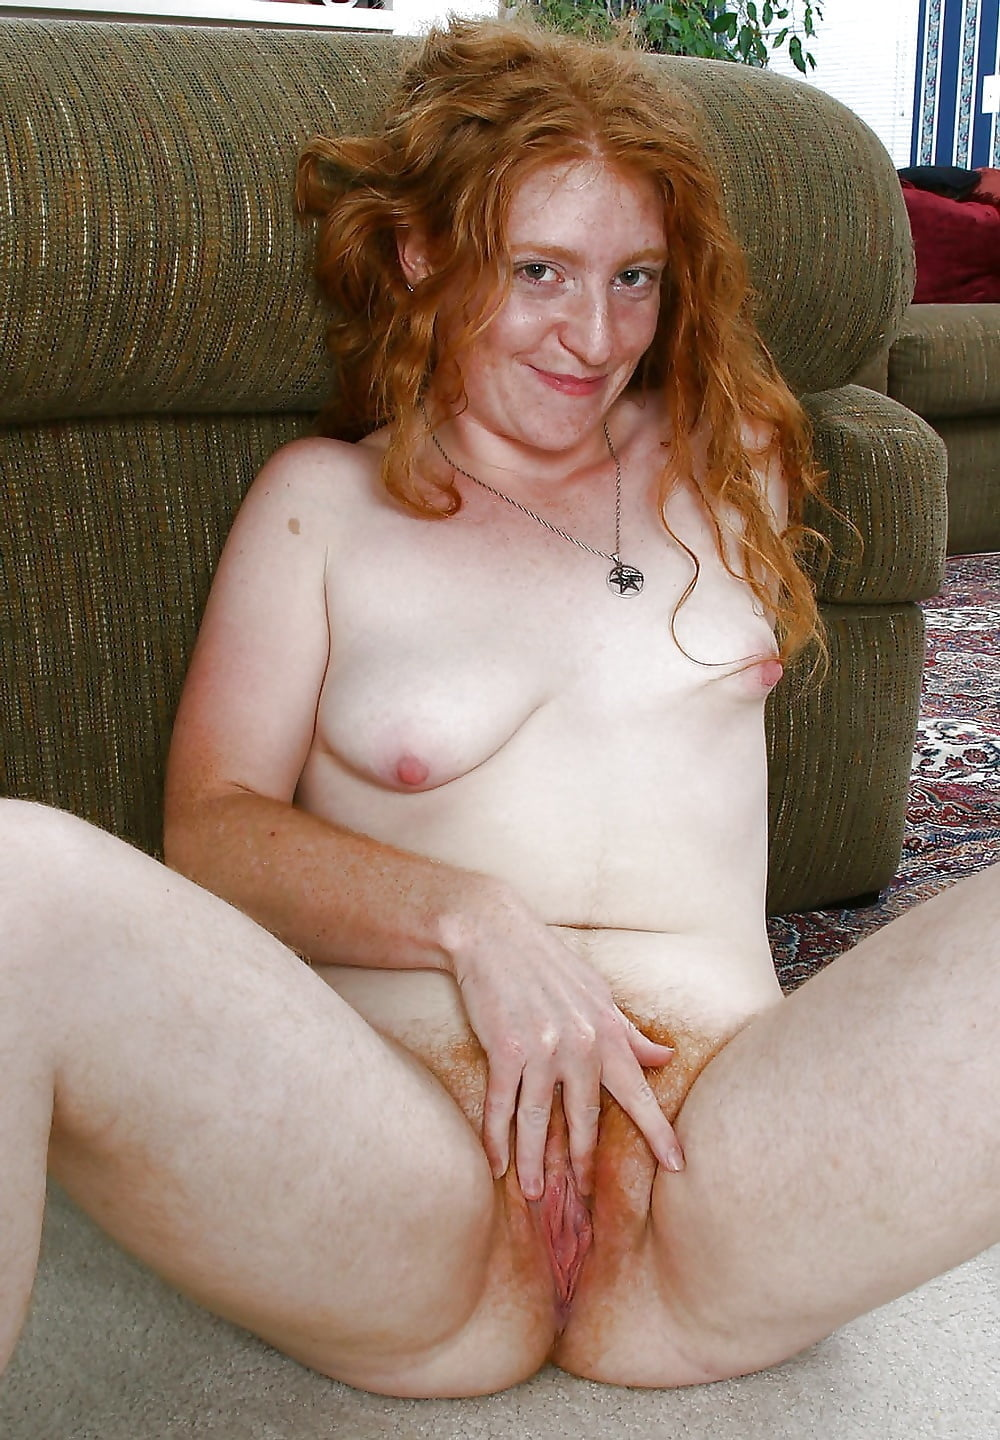 ugly-bitch-porn-big-chested-topless-women